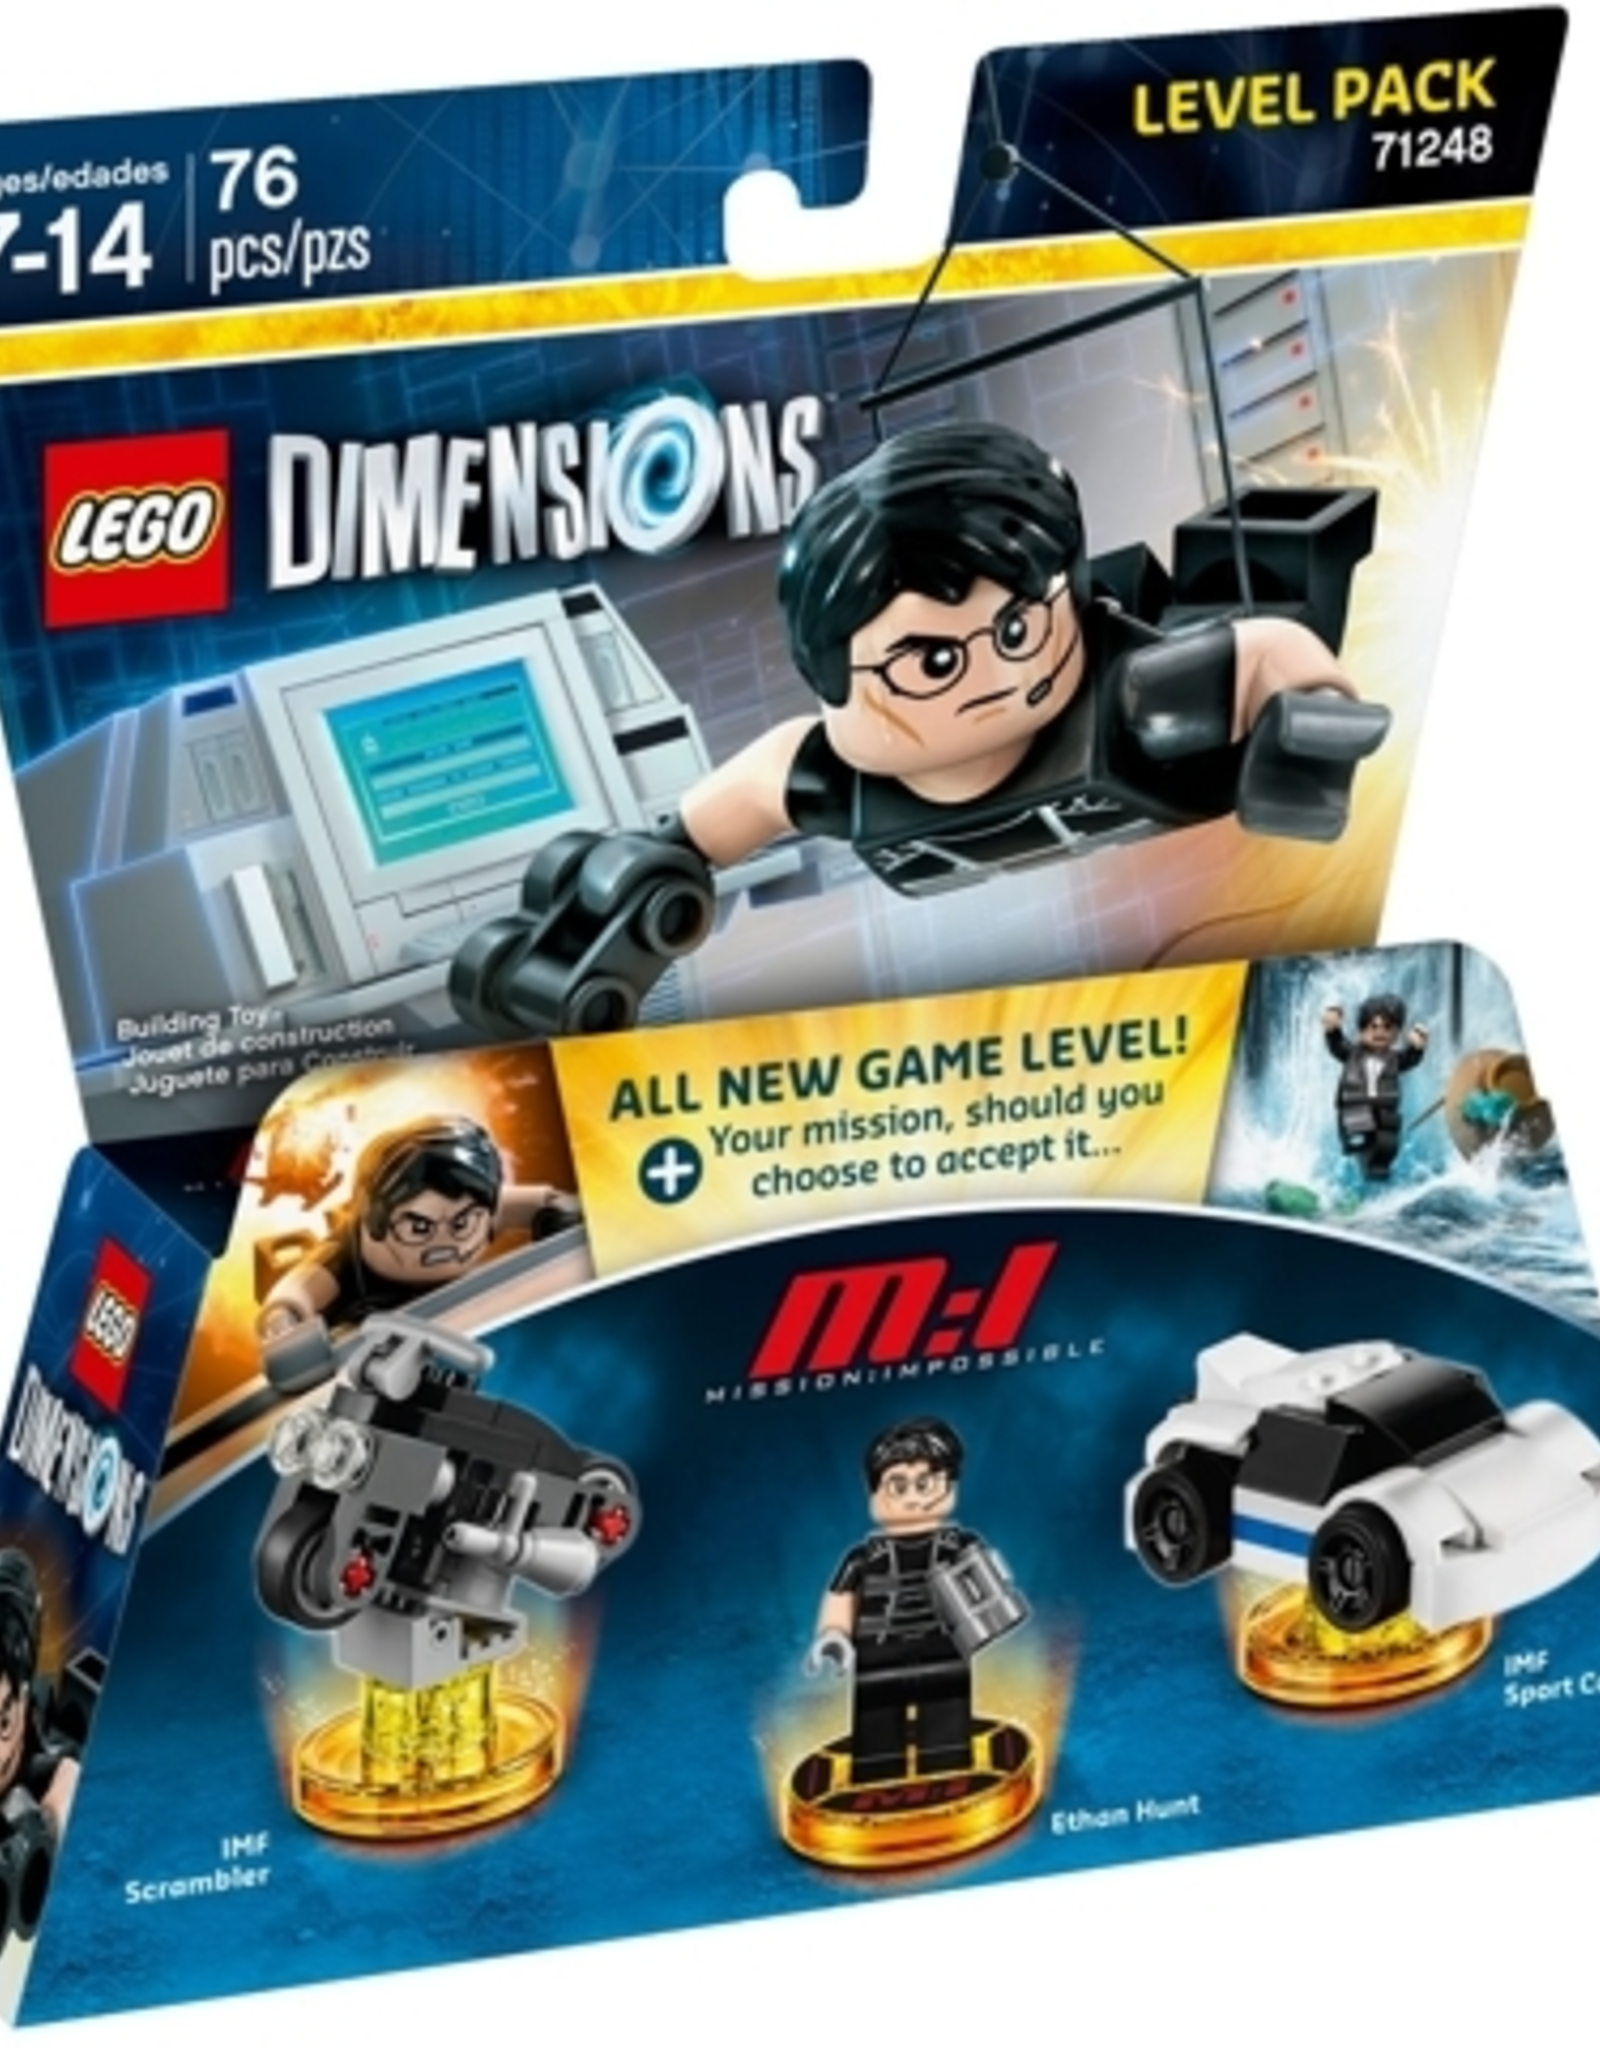 LEGO LEGO 71248 Level Pack - Mission: Impossible Dimensions